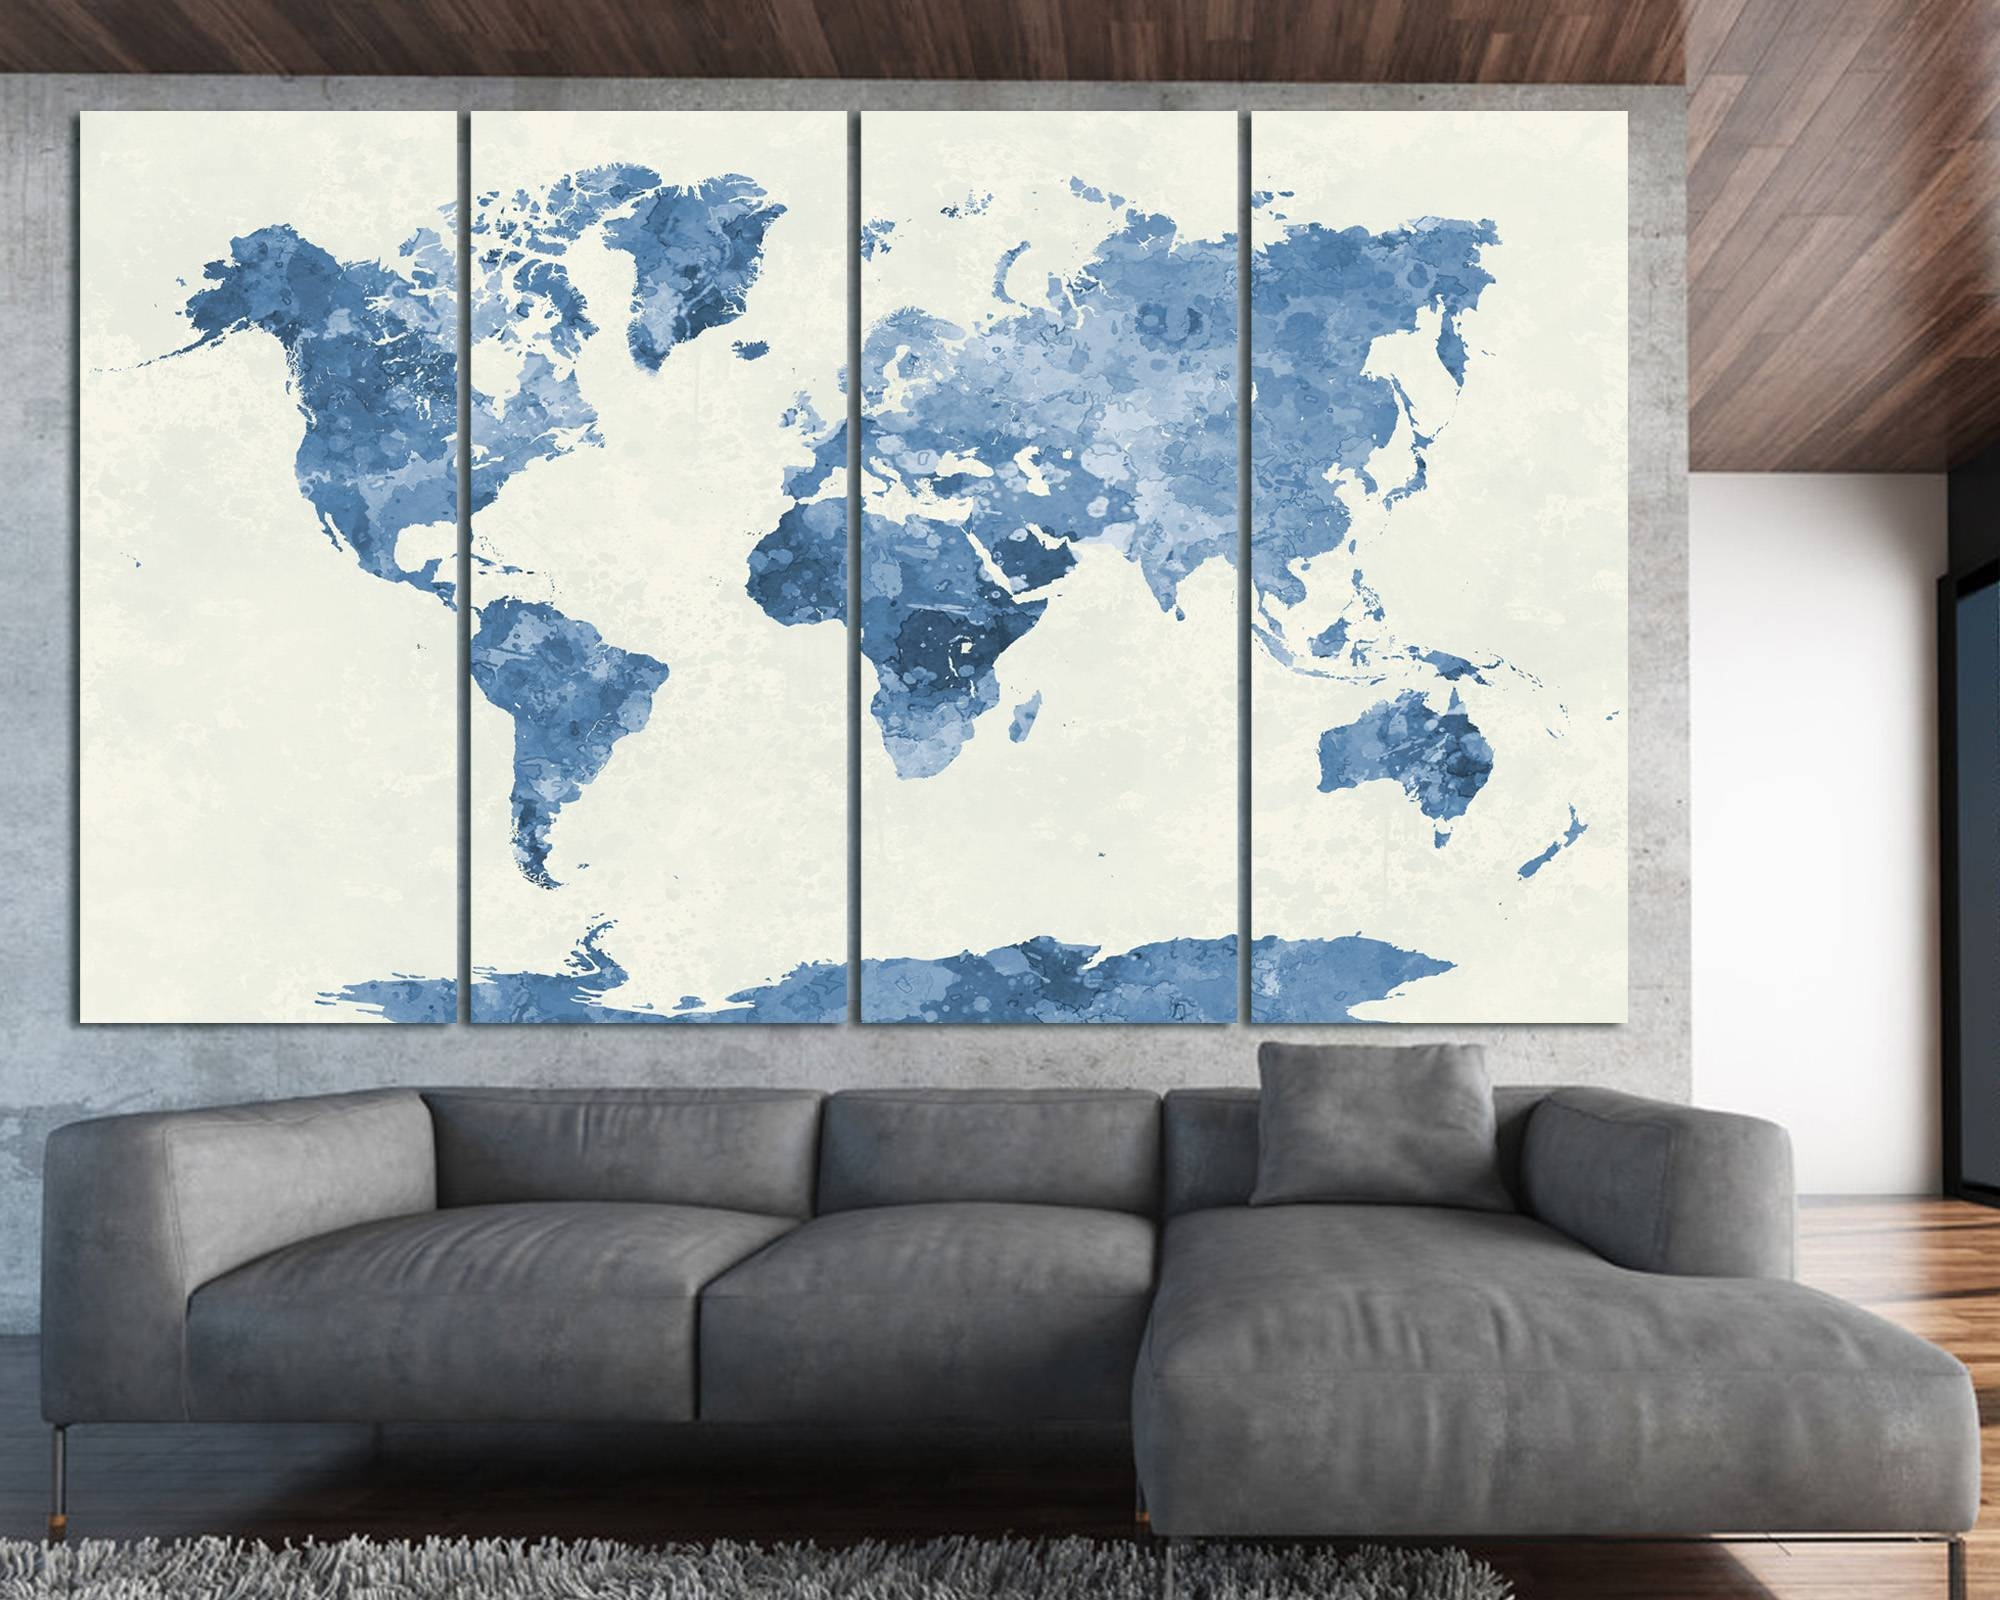 The Best Navy Blue Wall Art. Party Decorators. Living Room Couch Set. Living Room Table Set. Decor For Walls. Decorative Wrought Iron Railings. Oversized Vase Home Decor. Rooms For Rent In Danbury Ct. Deer Antler Wall Decor